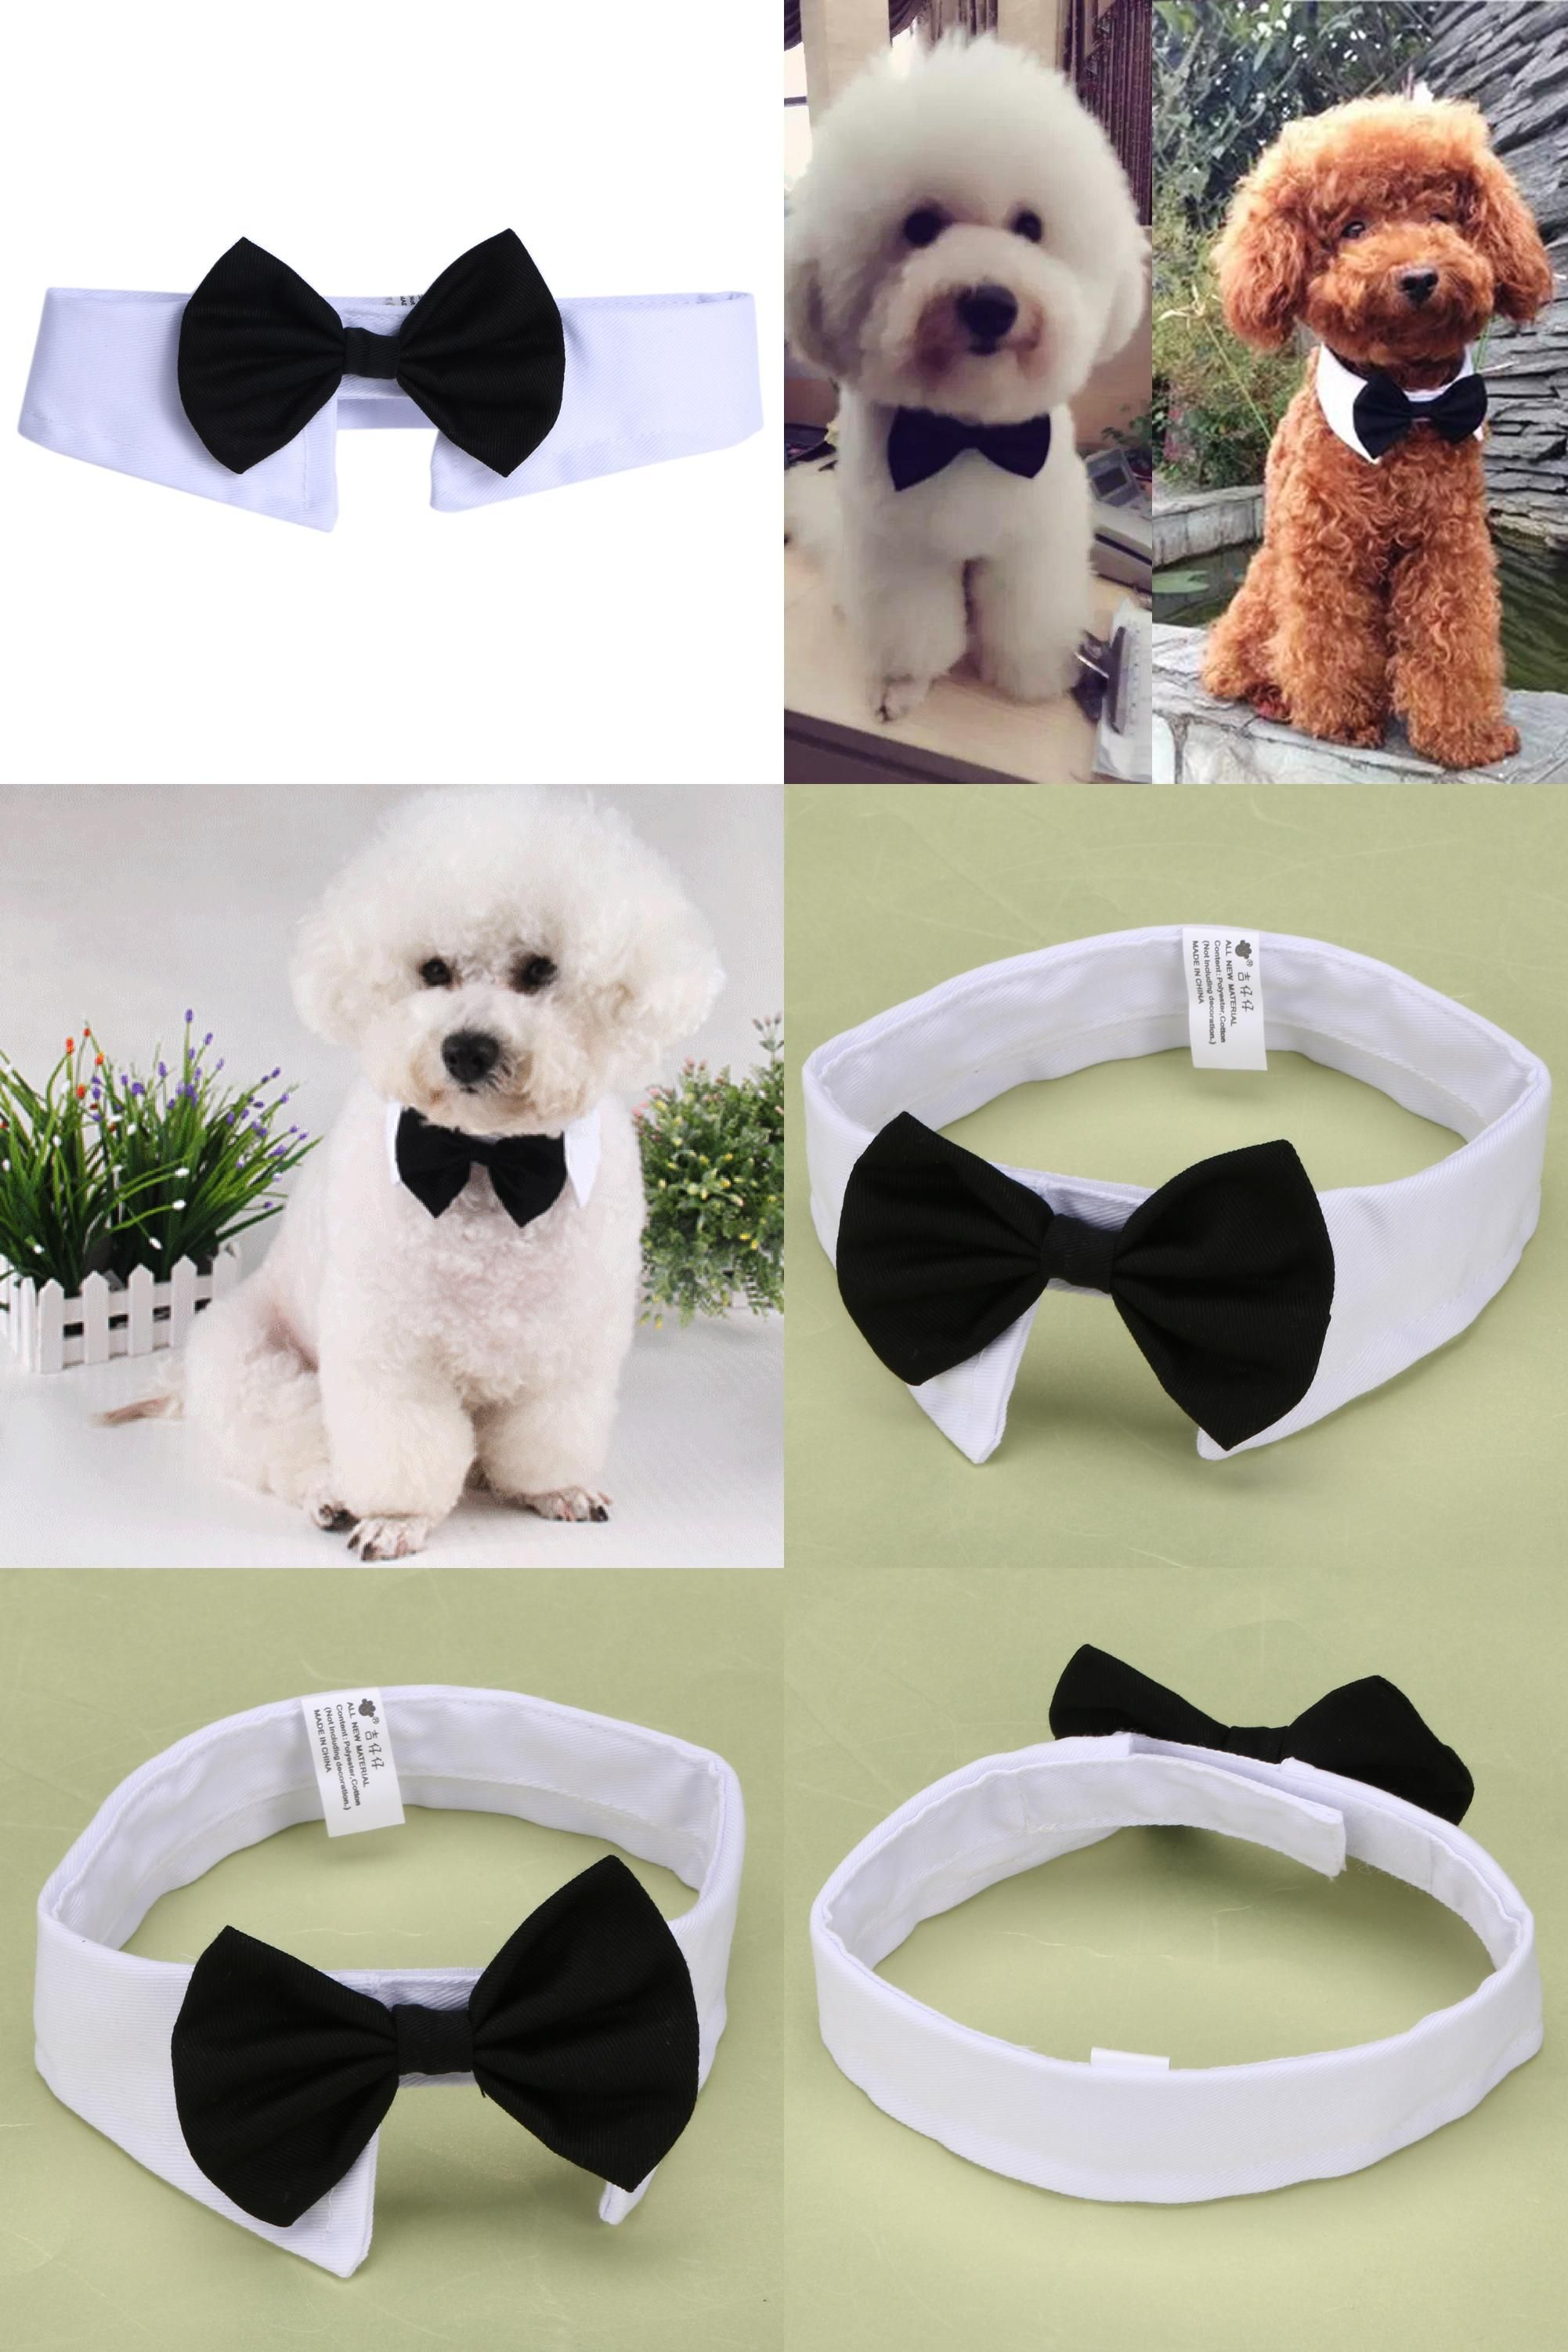 Visit To Buy Fashion Adorable Dog Bow Tie Cat Pets England Bow Butterfly Tie Necktie Collar Clothes For Wedding Party E Dog Collar Bow Tie Dog Bowtie Cat Tie